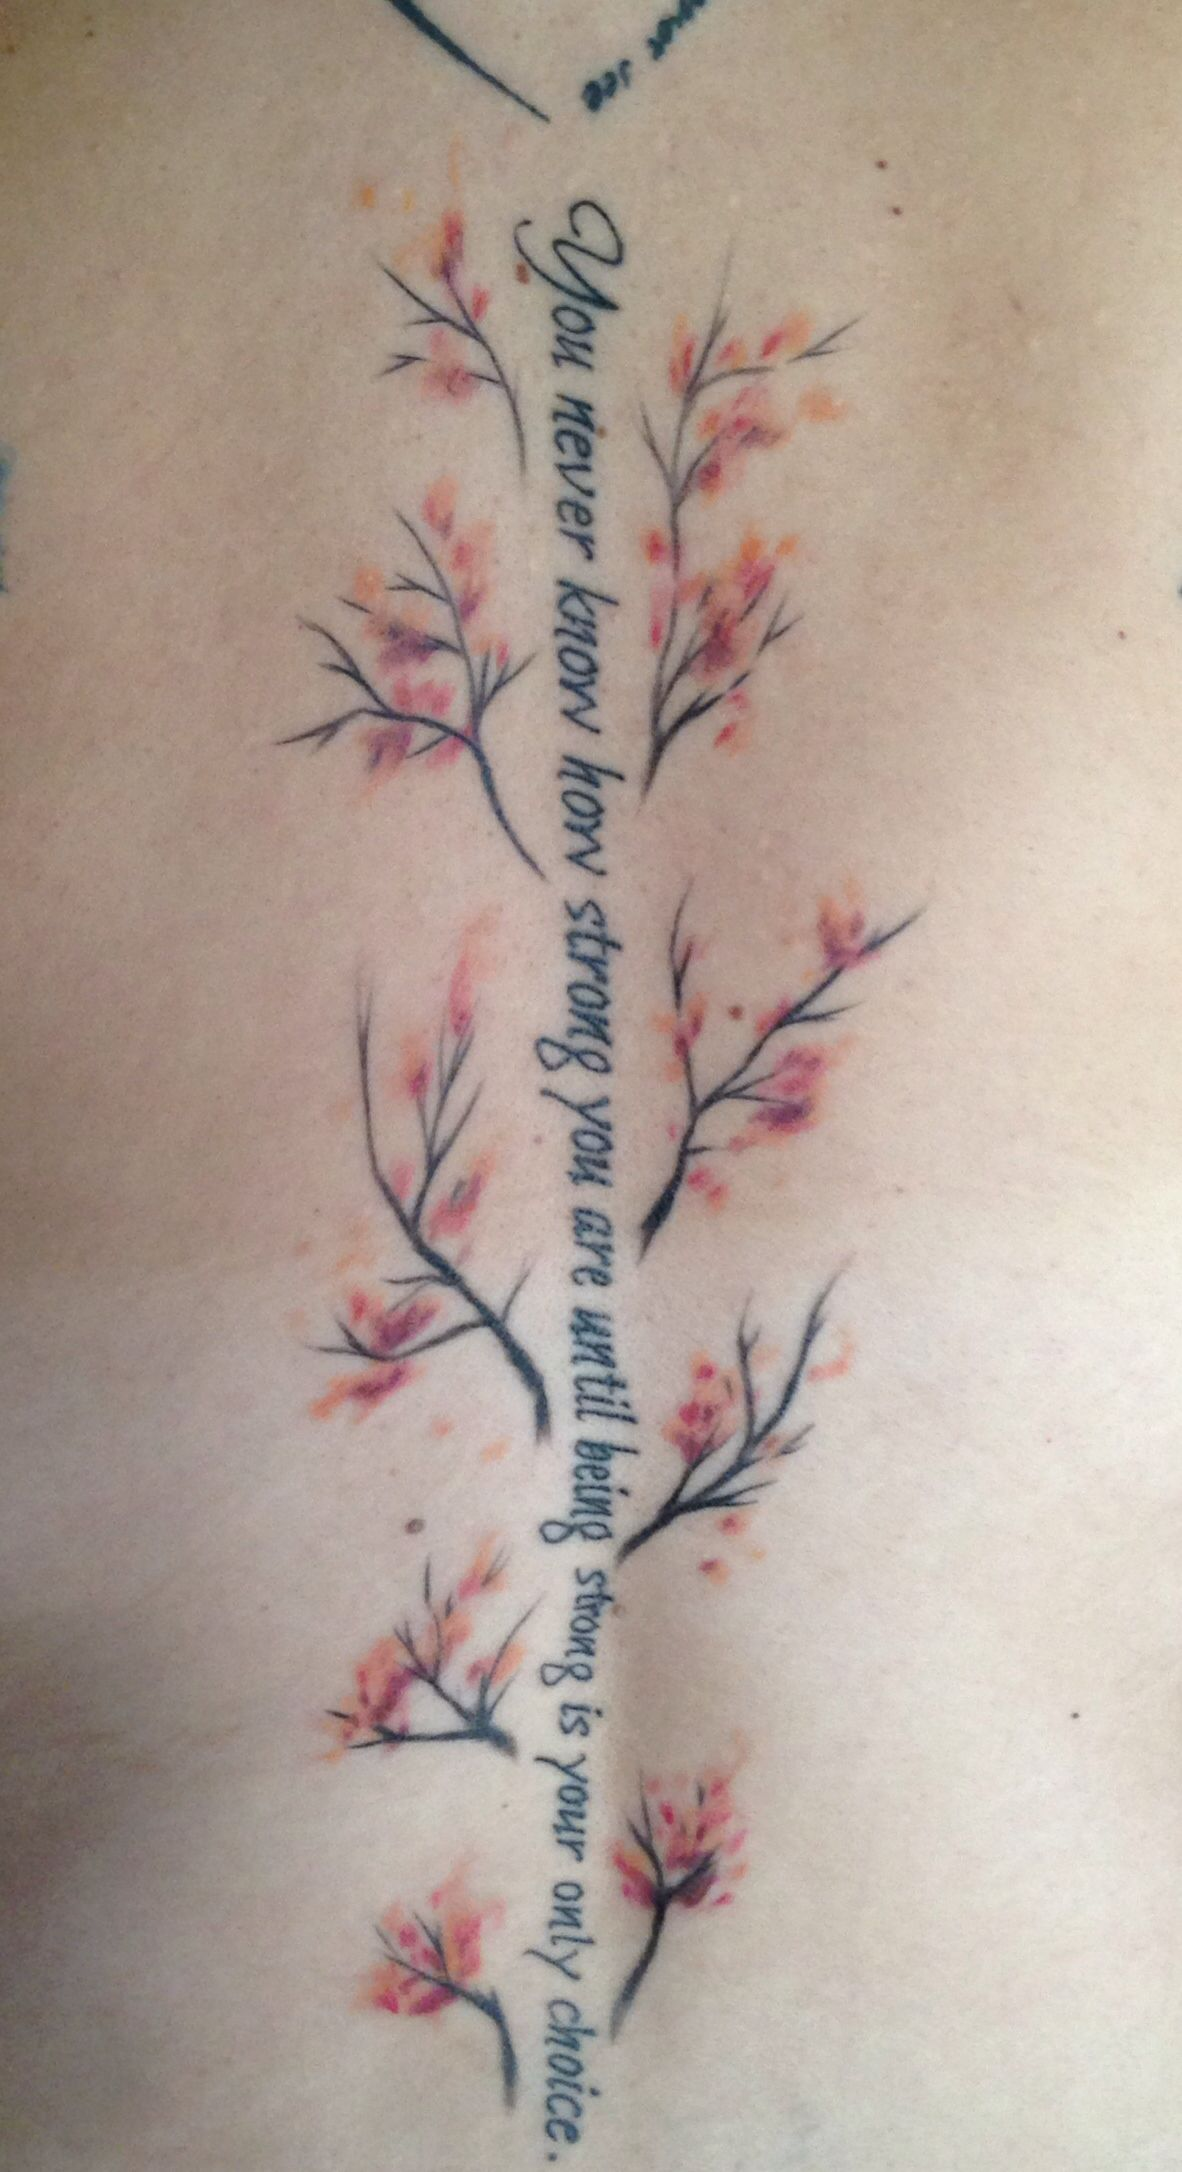 Pin By Jaymi Clemens On Tattoos Spine Tattoo Quotes Spine Tattoos For Women Back Tattoo